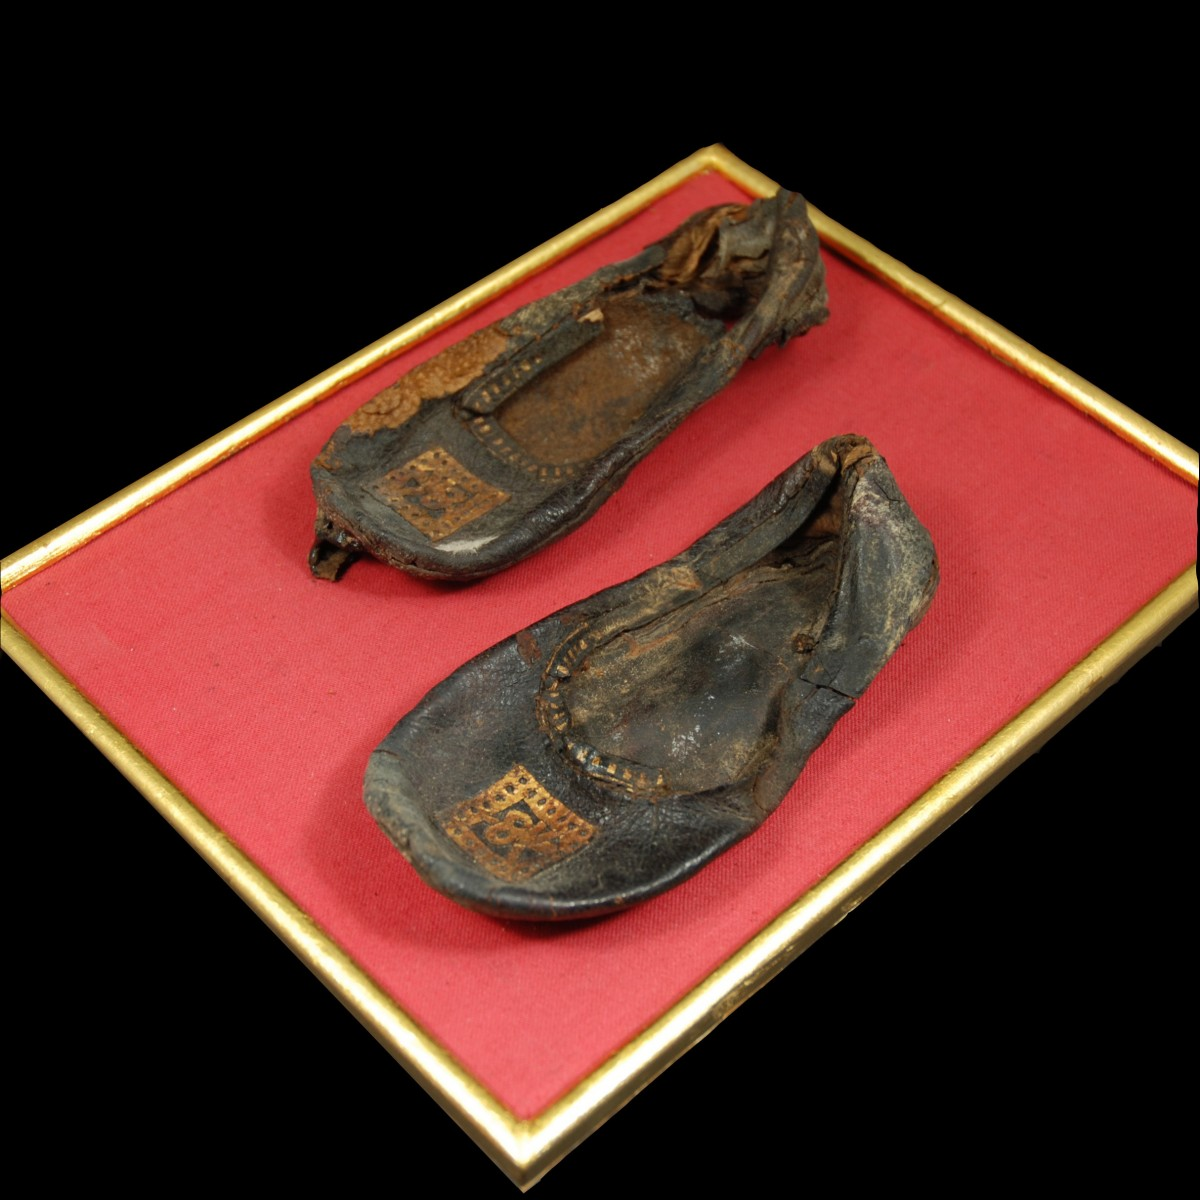 Coptic leather shoes with gilding